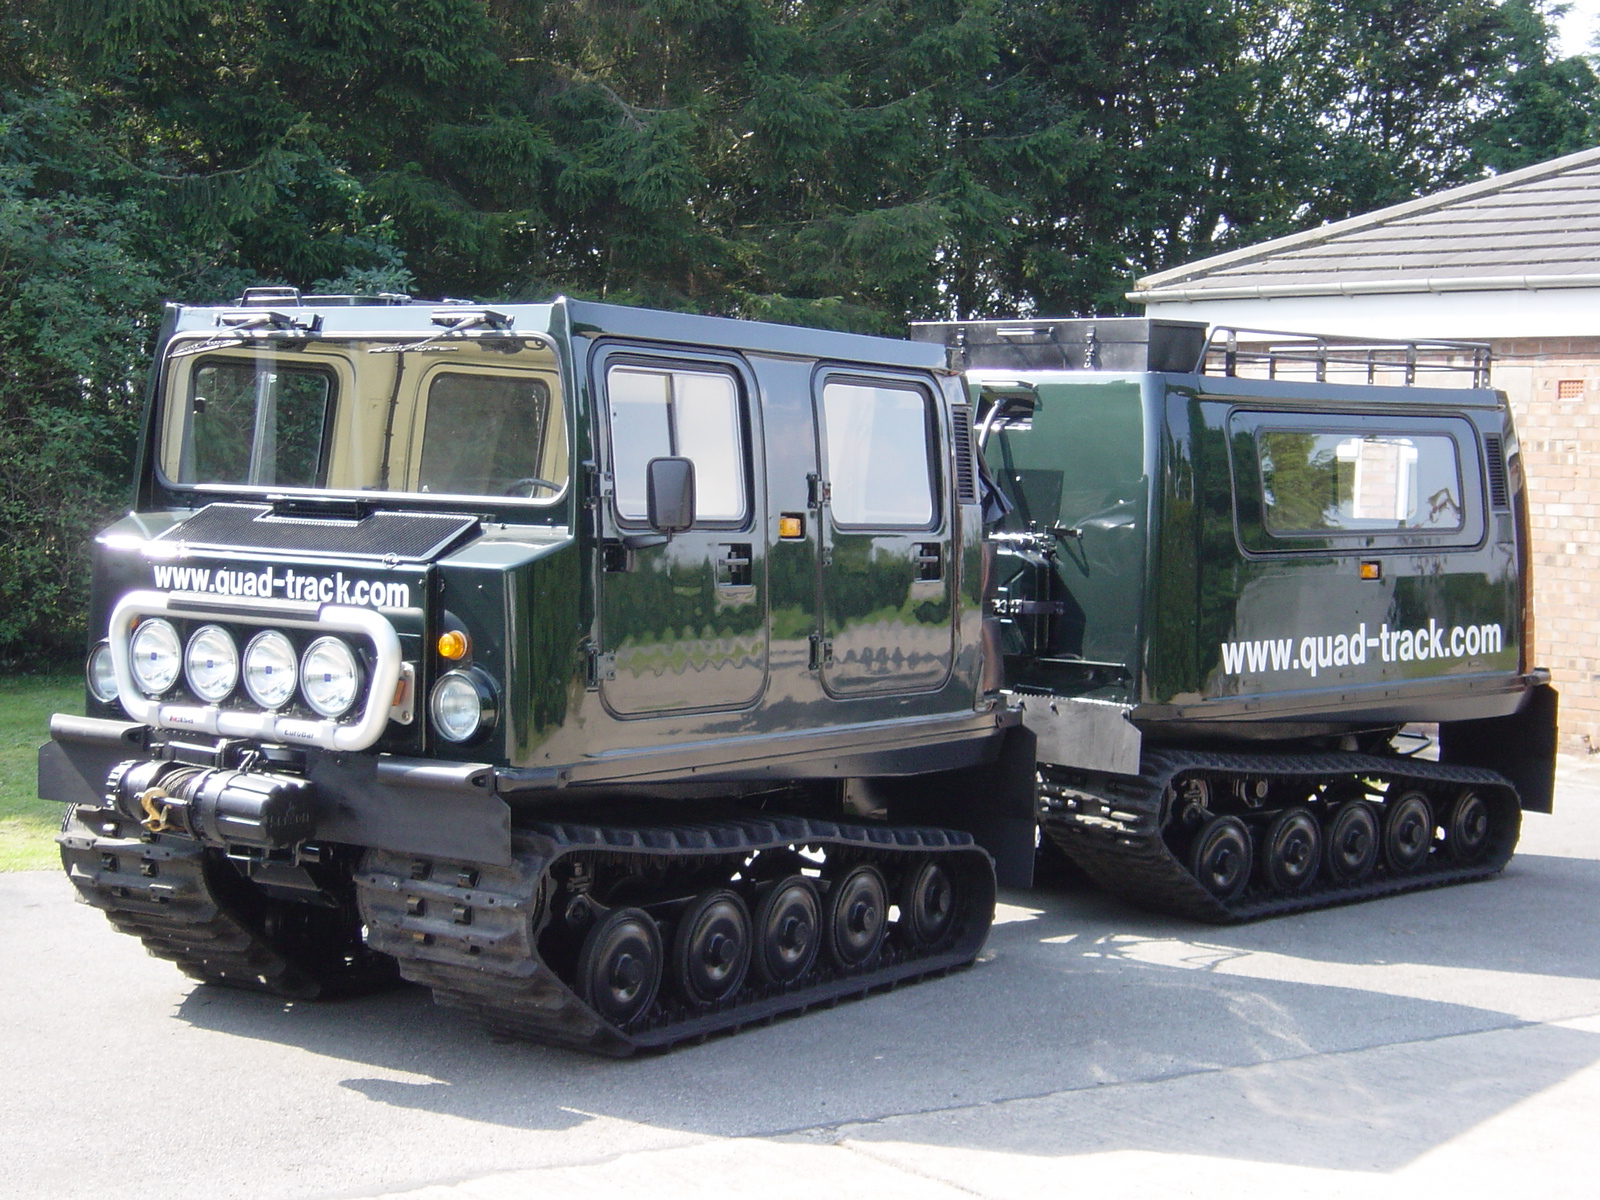 BV206 PERSONELL CARRIER-16